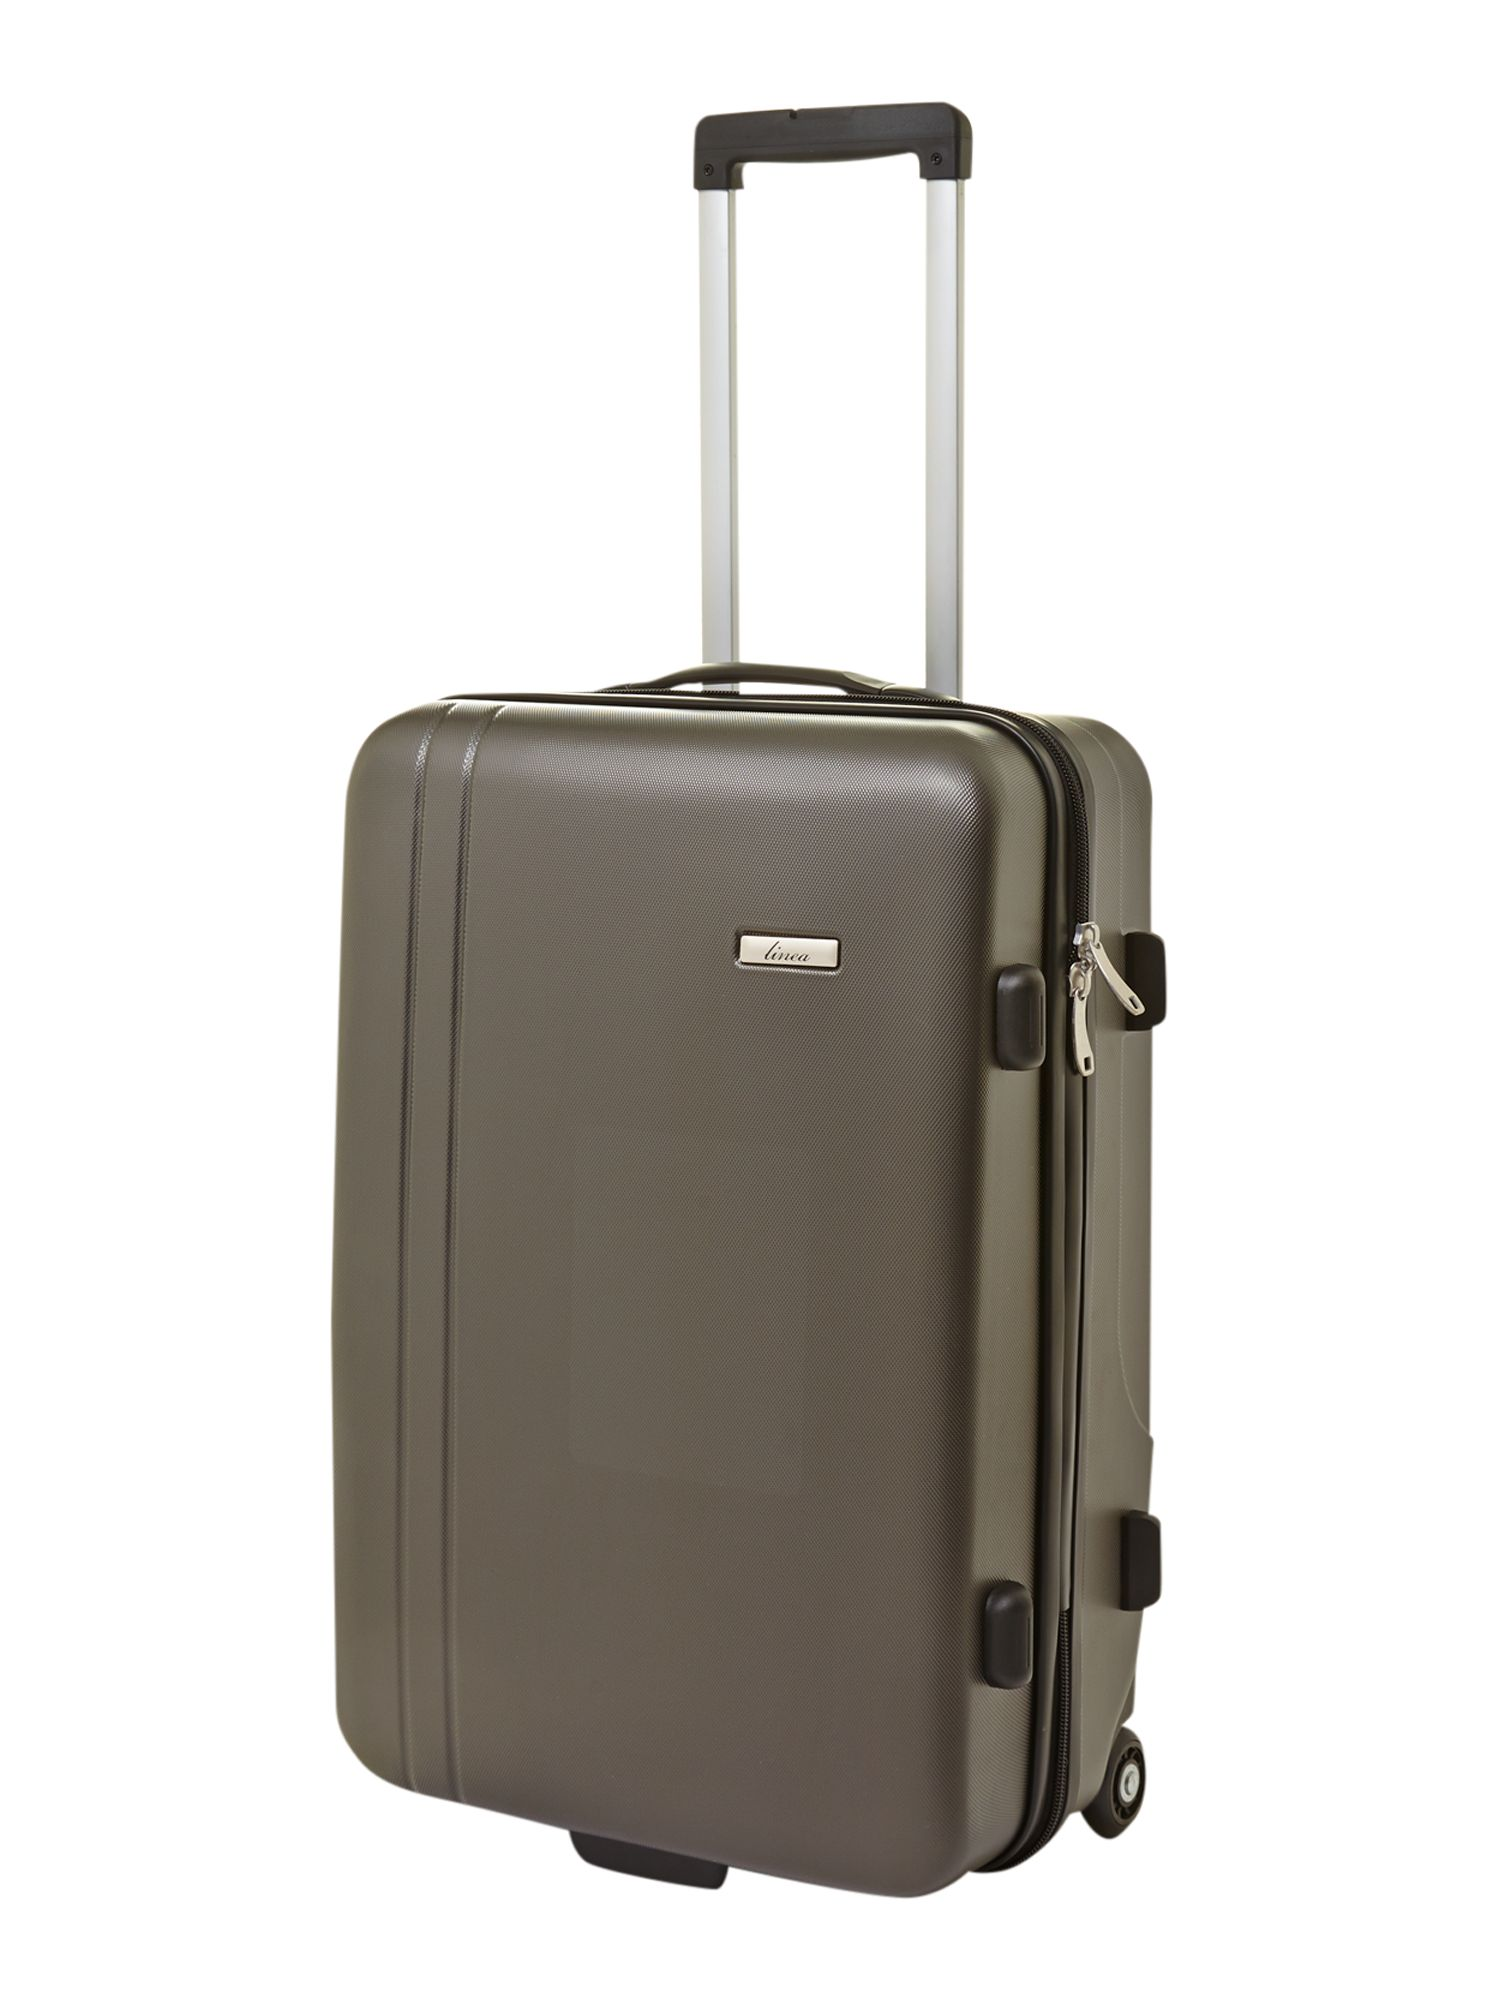 Capetown black luggage range